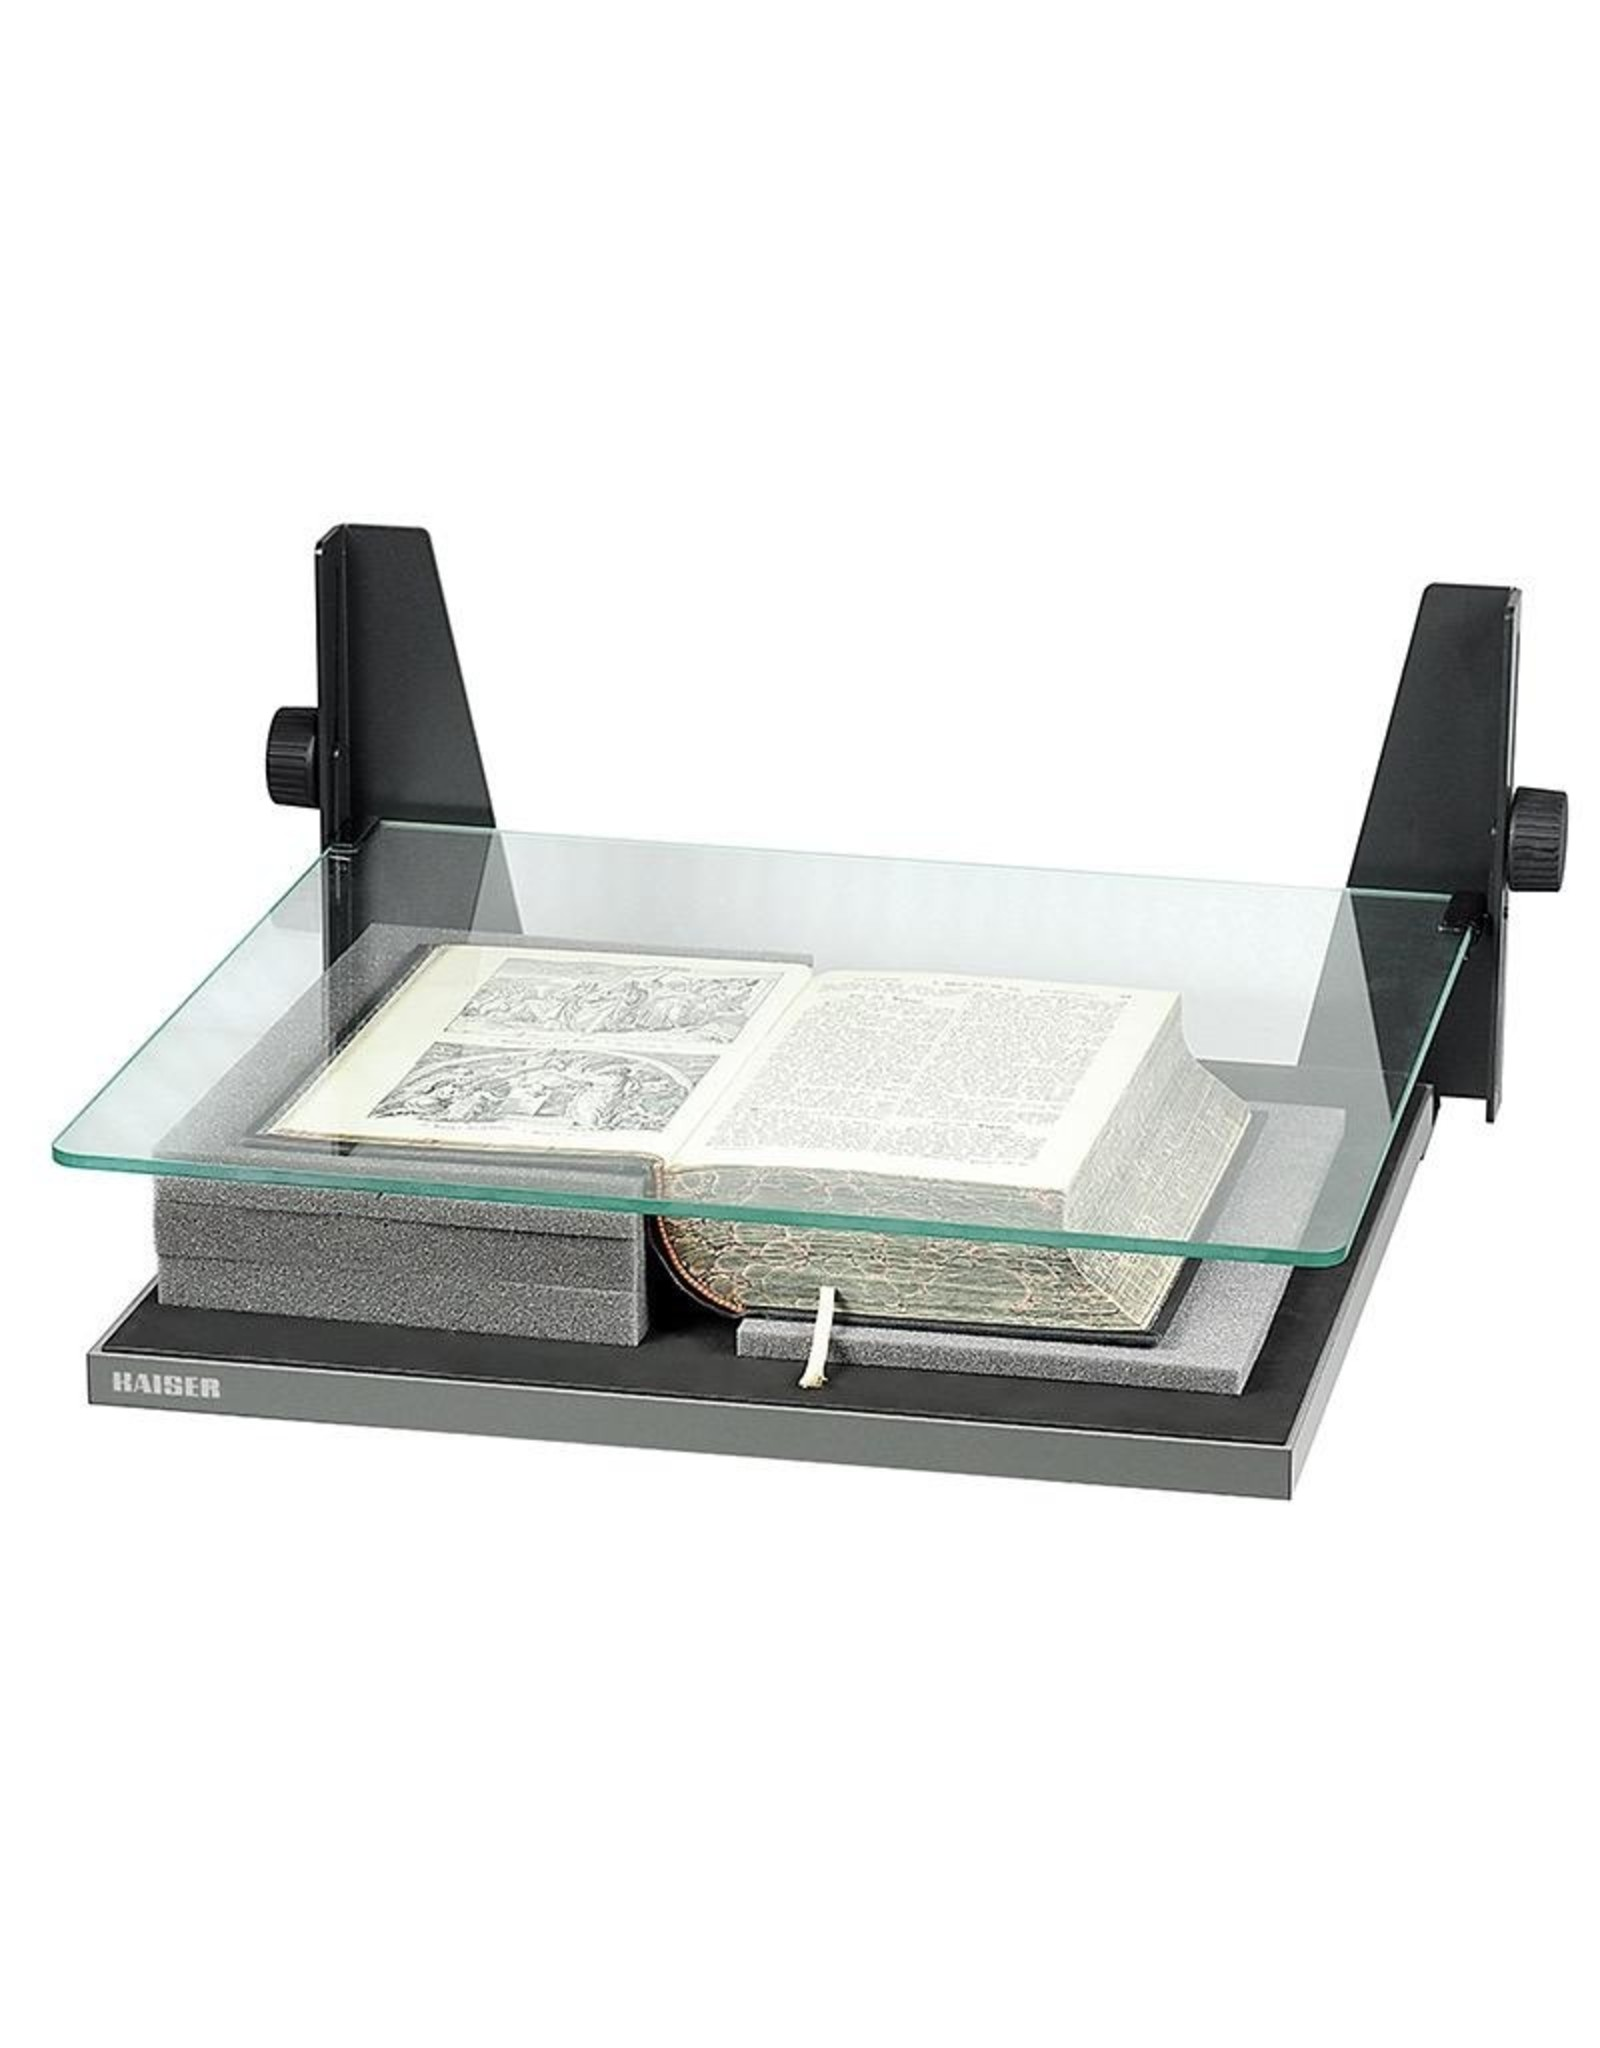 "Kaiser Kaiser Book Holder for books up to 44 x 41 cm (17.3 x 16.1""), glass plate, height adjustable up to 145mm (5,7""), incl. foam sheets for height adjustment"